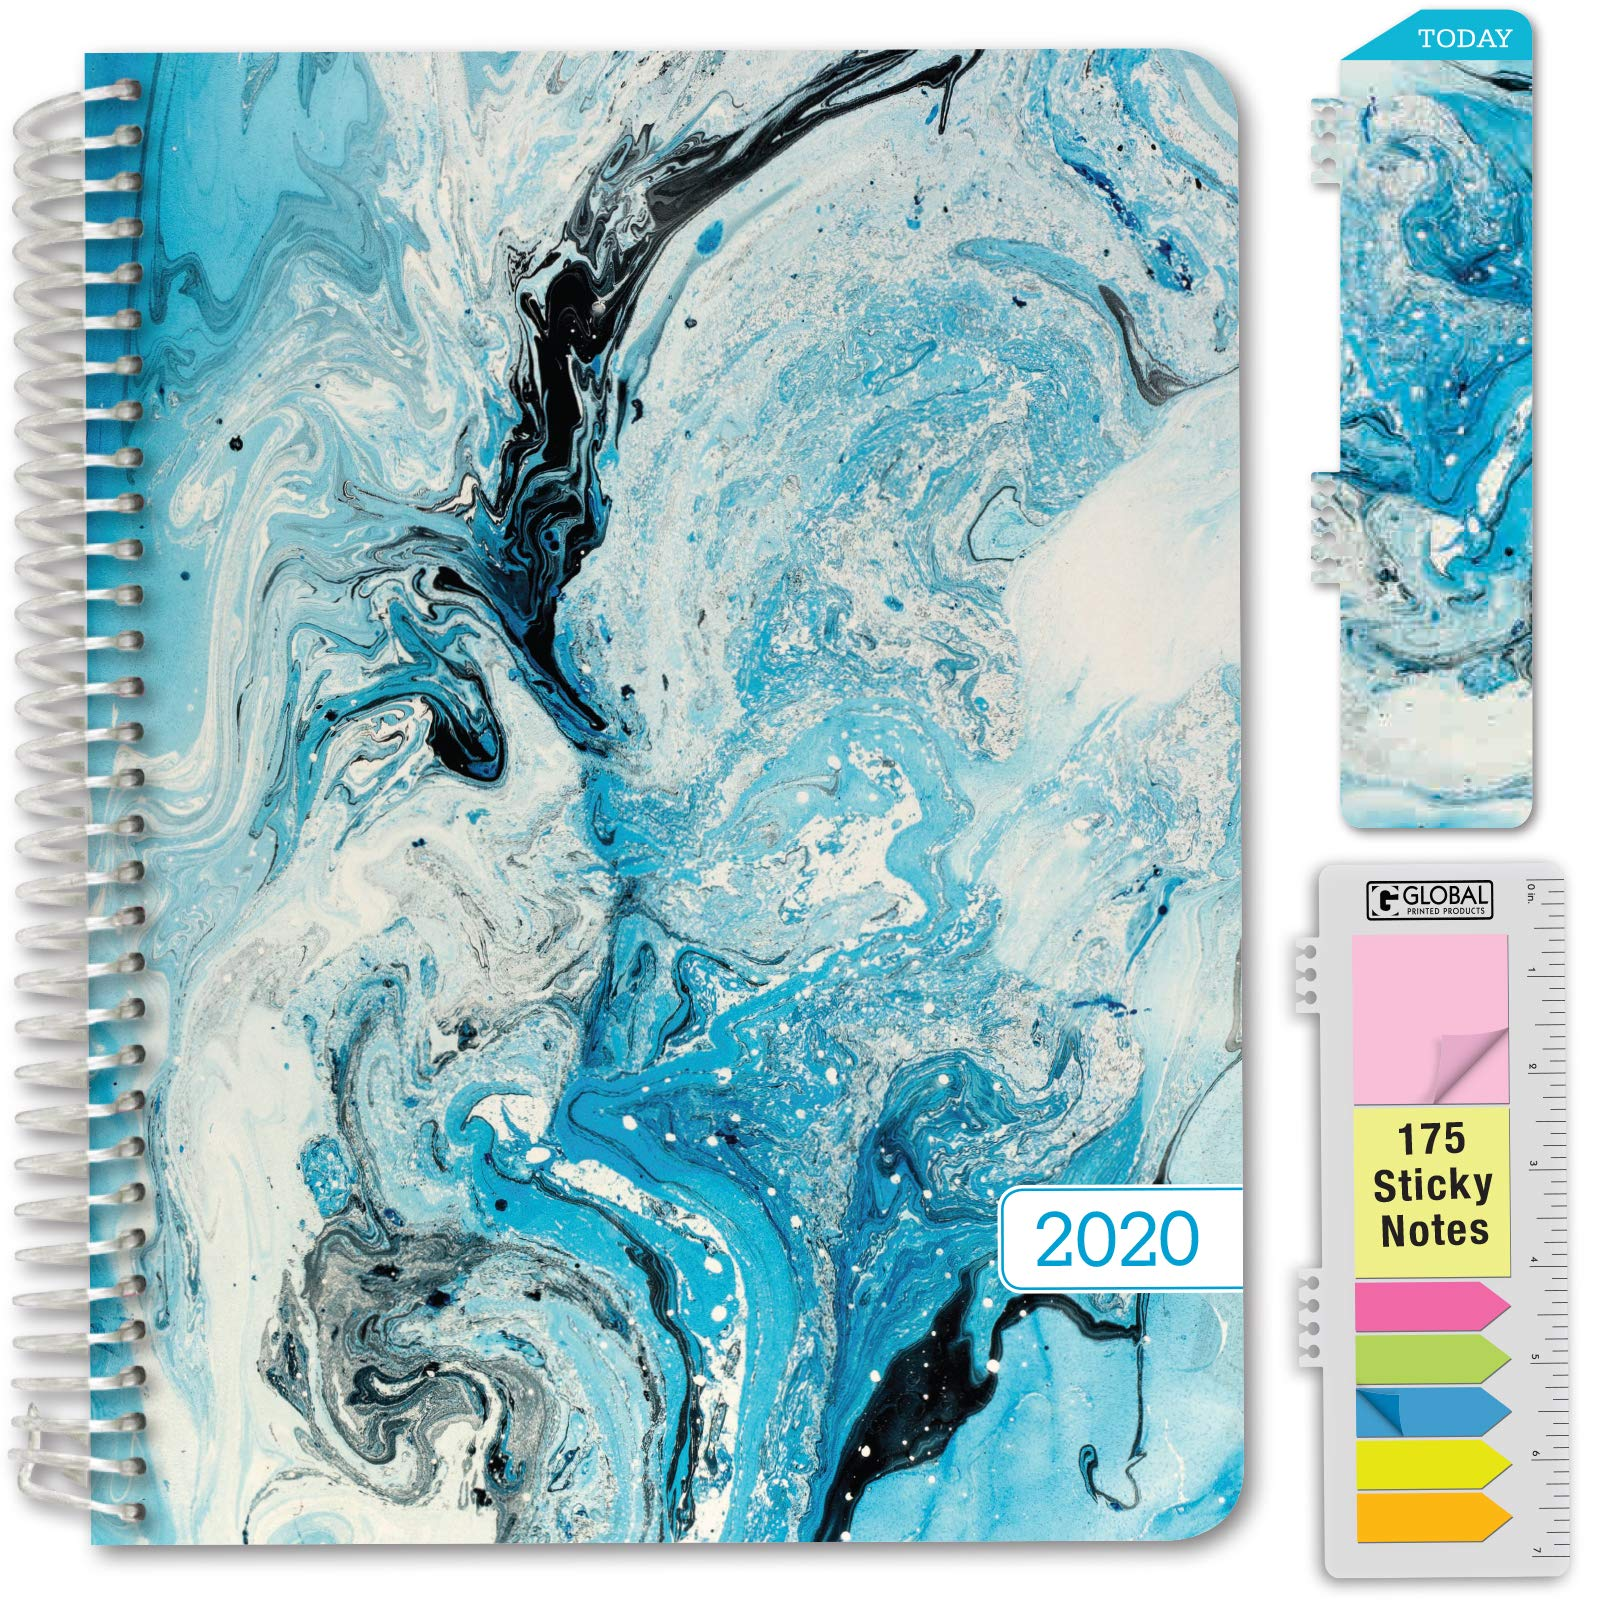 HARDCOVER Academic Year 2020-2021 Planner: Pocket Folder and Sticky Note Set Bonus Bookmark Spring Floral 8.5x11 Daily Weekly Monthly Planner Yearly Agenda June 2020 Through July 2021